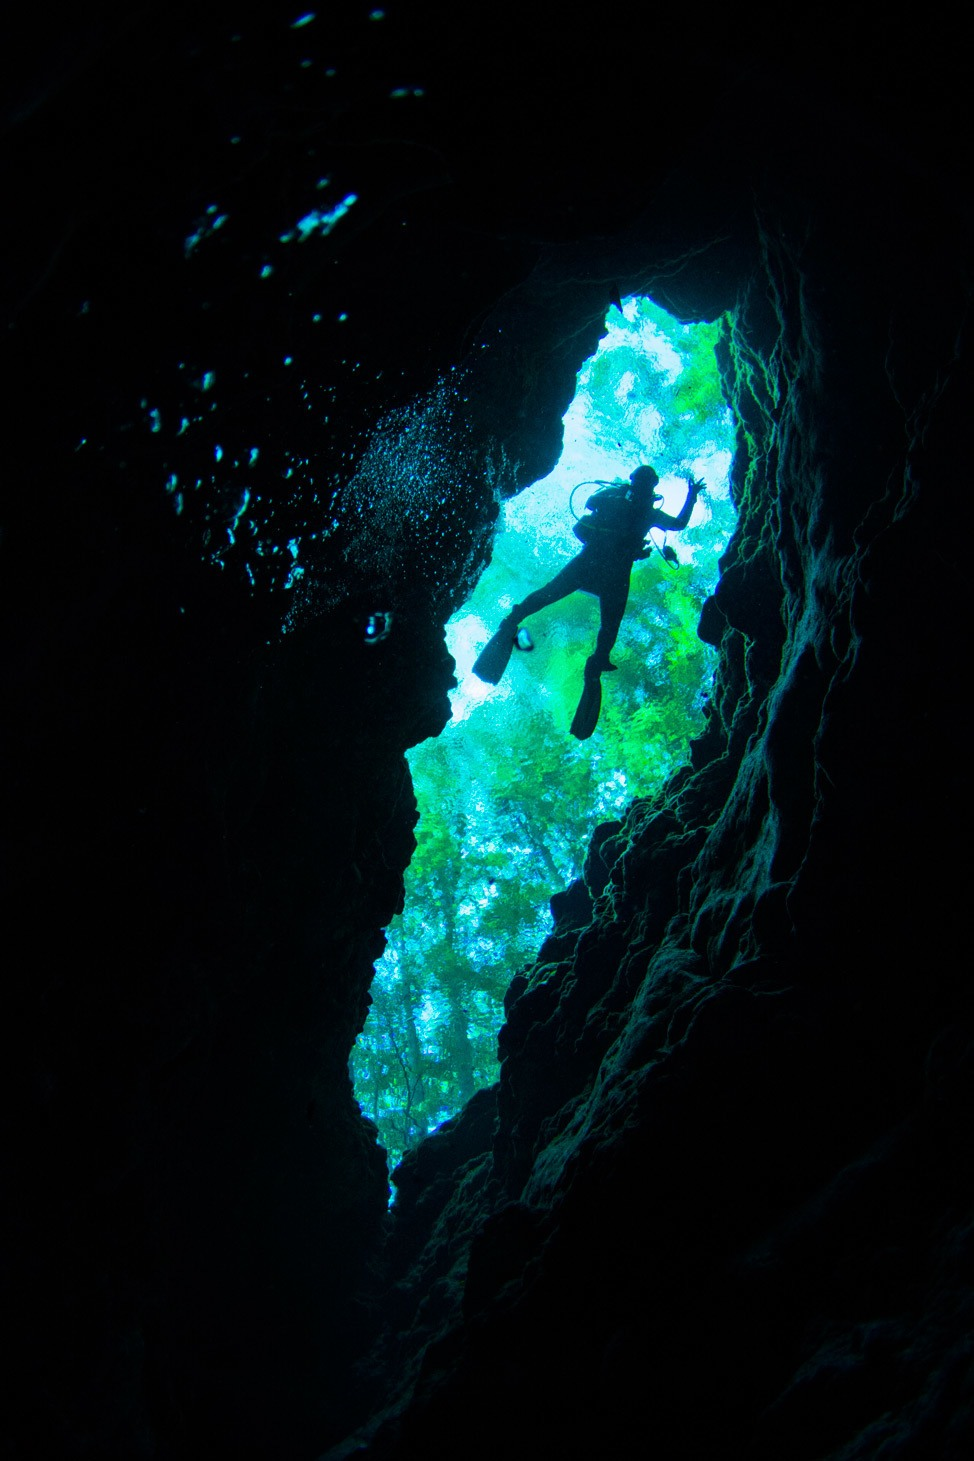 Diving The Devil's Spring, Ginnie Springs, Florida